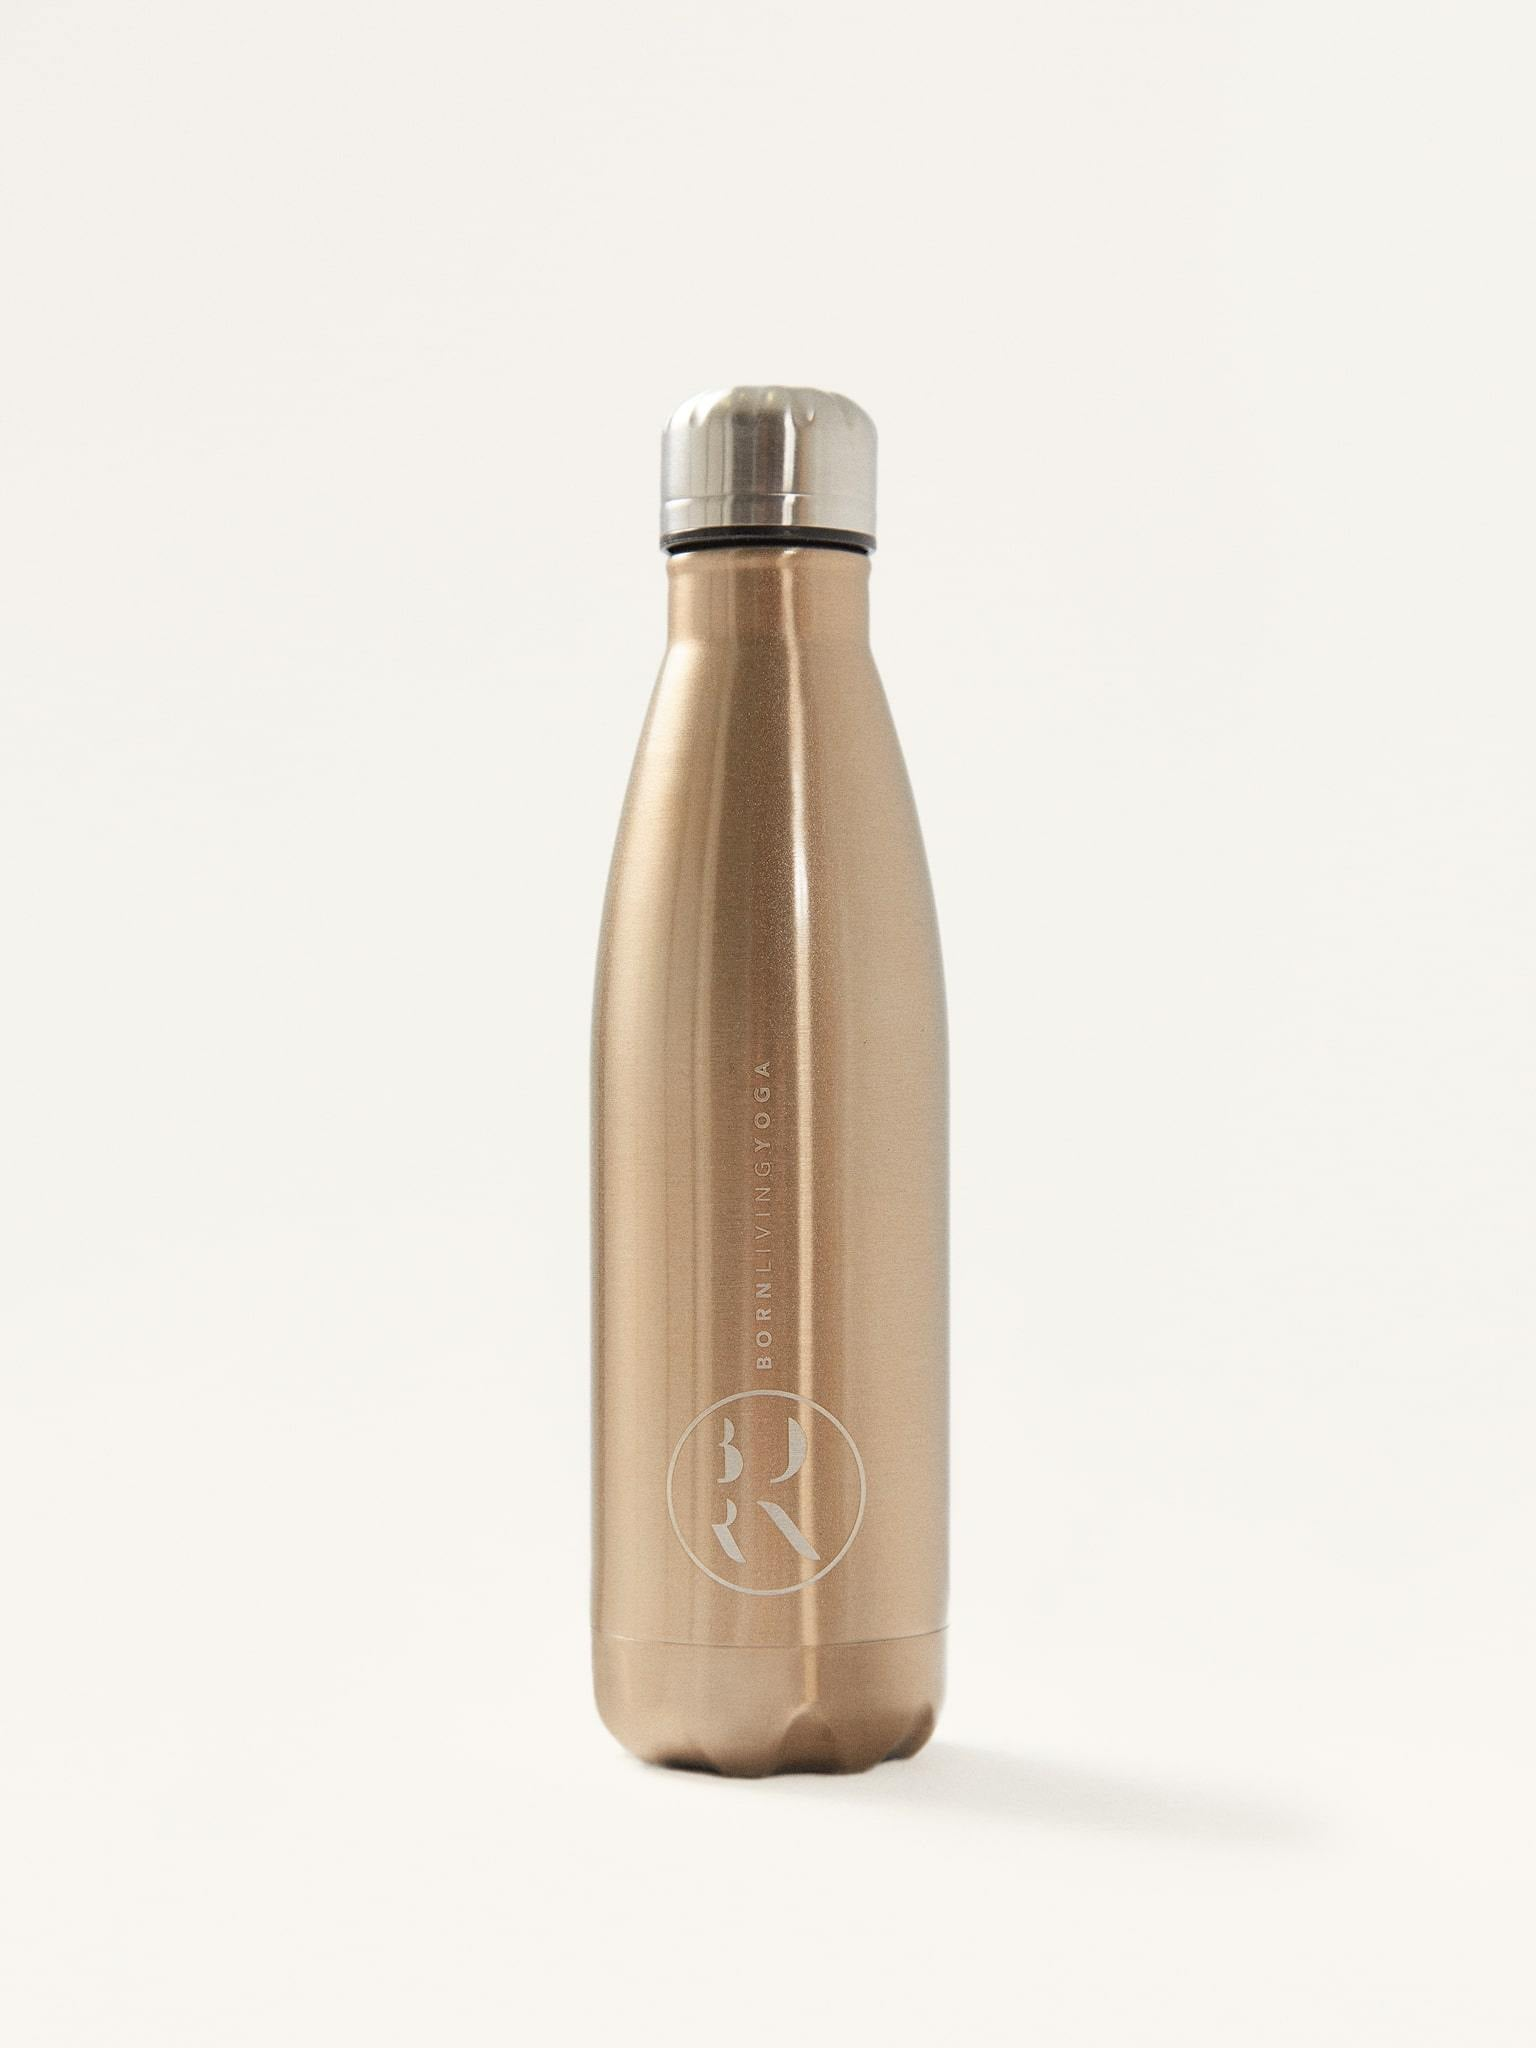 Born Bottle Gold -Limited Edition-